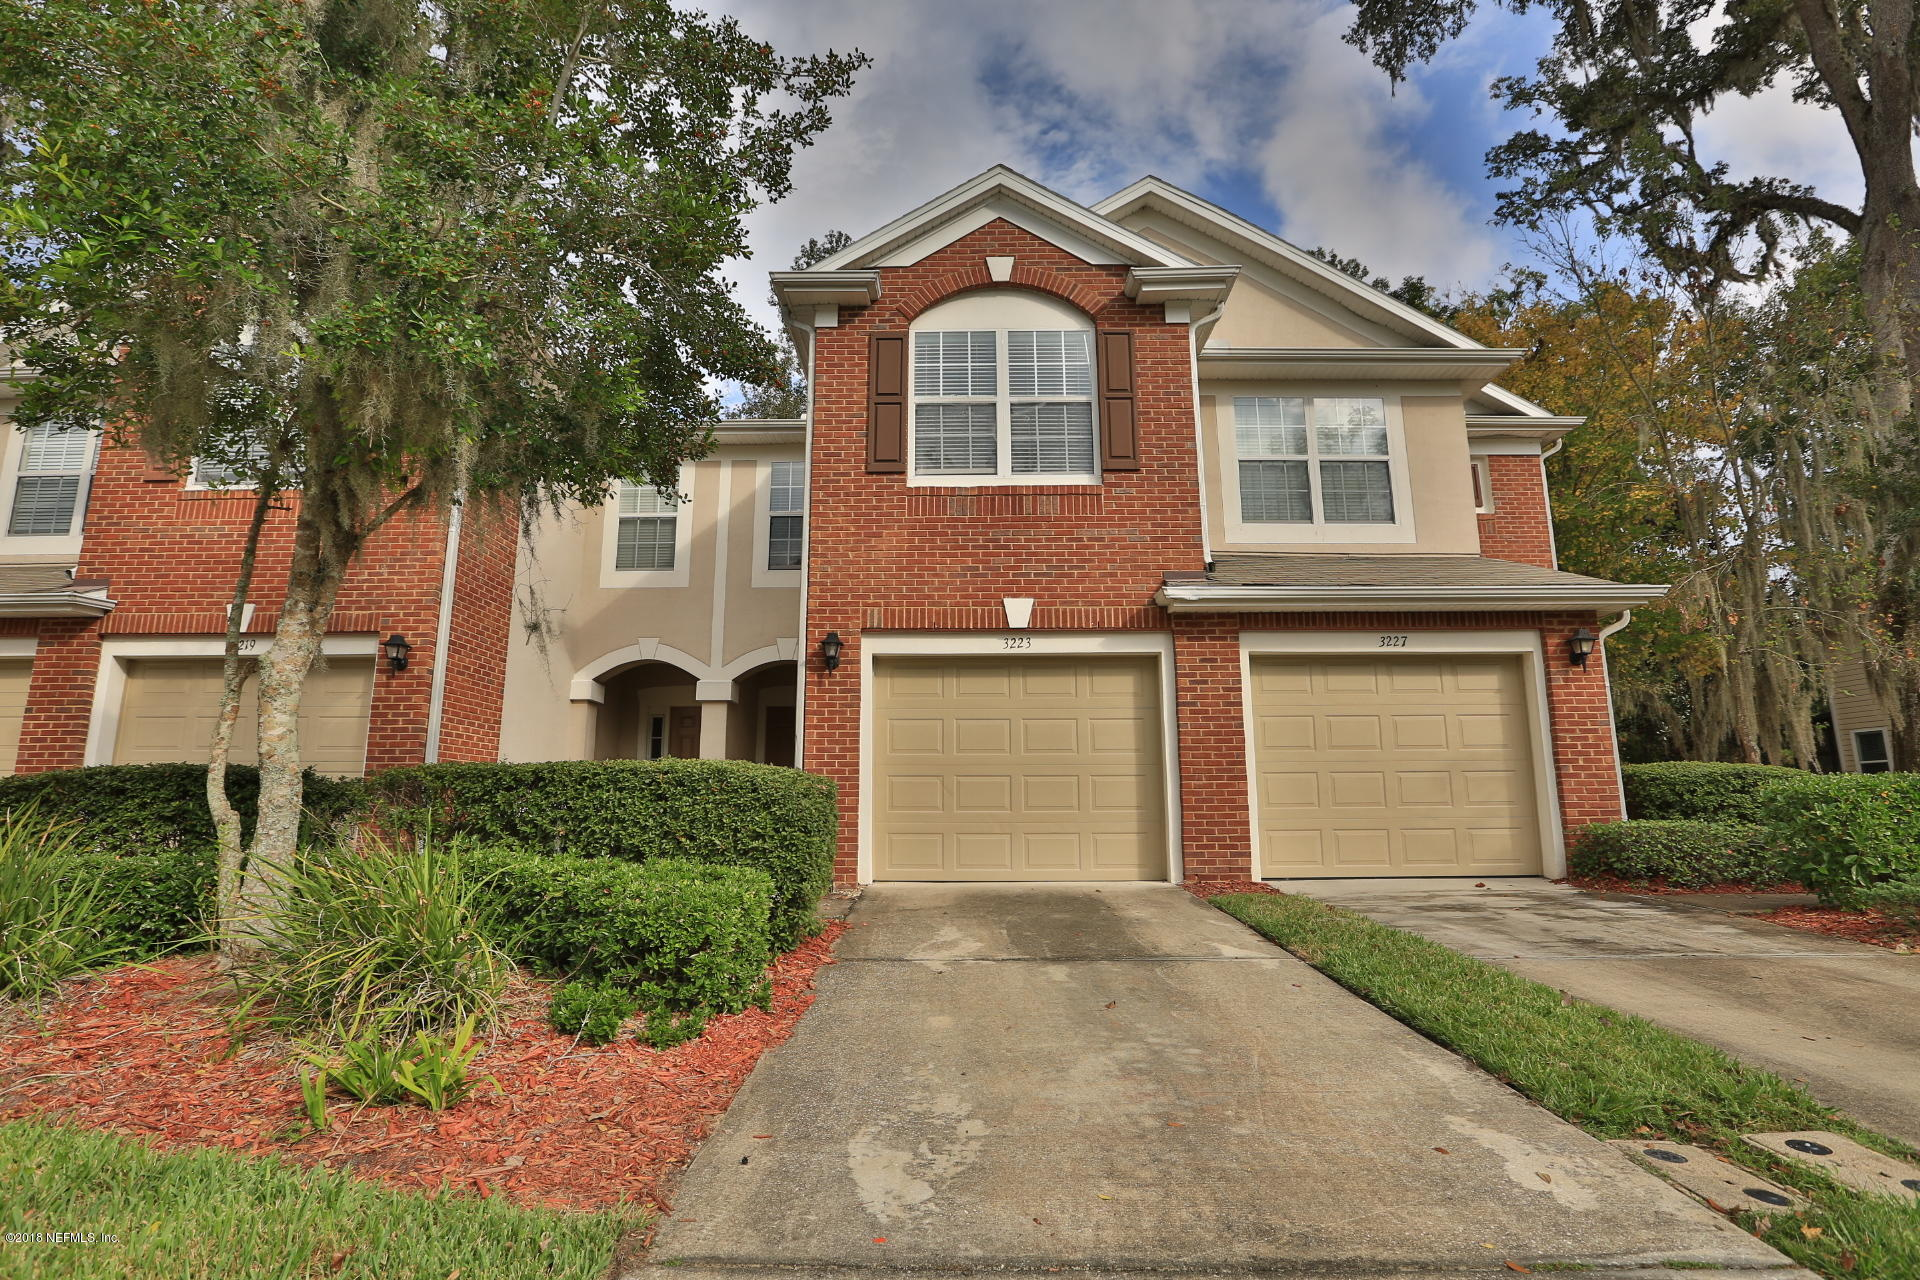 3223 CLIMBING IVY, JACKSONVILLE, FLORIDA 32216, 3 Bedrooms Bedrooms, ,2 BathroomsBathrooms,Residential - townhome,For sale,CLIMBING IVY,966682